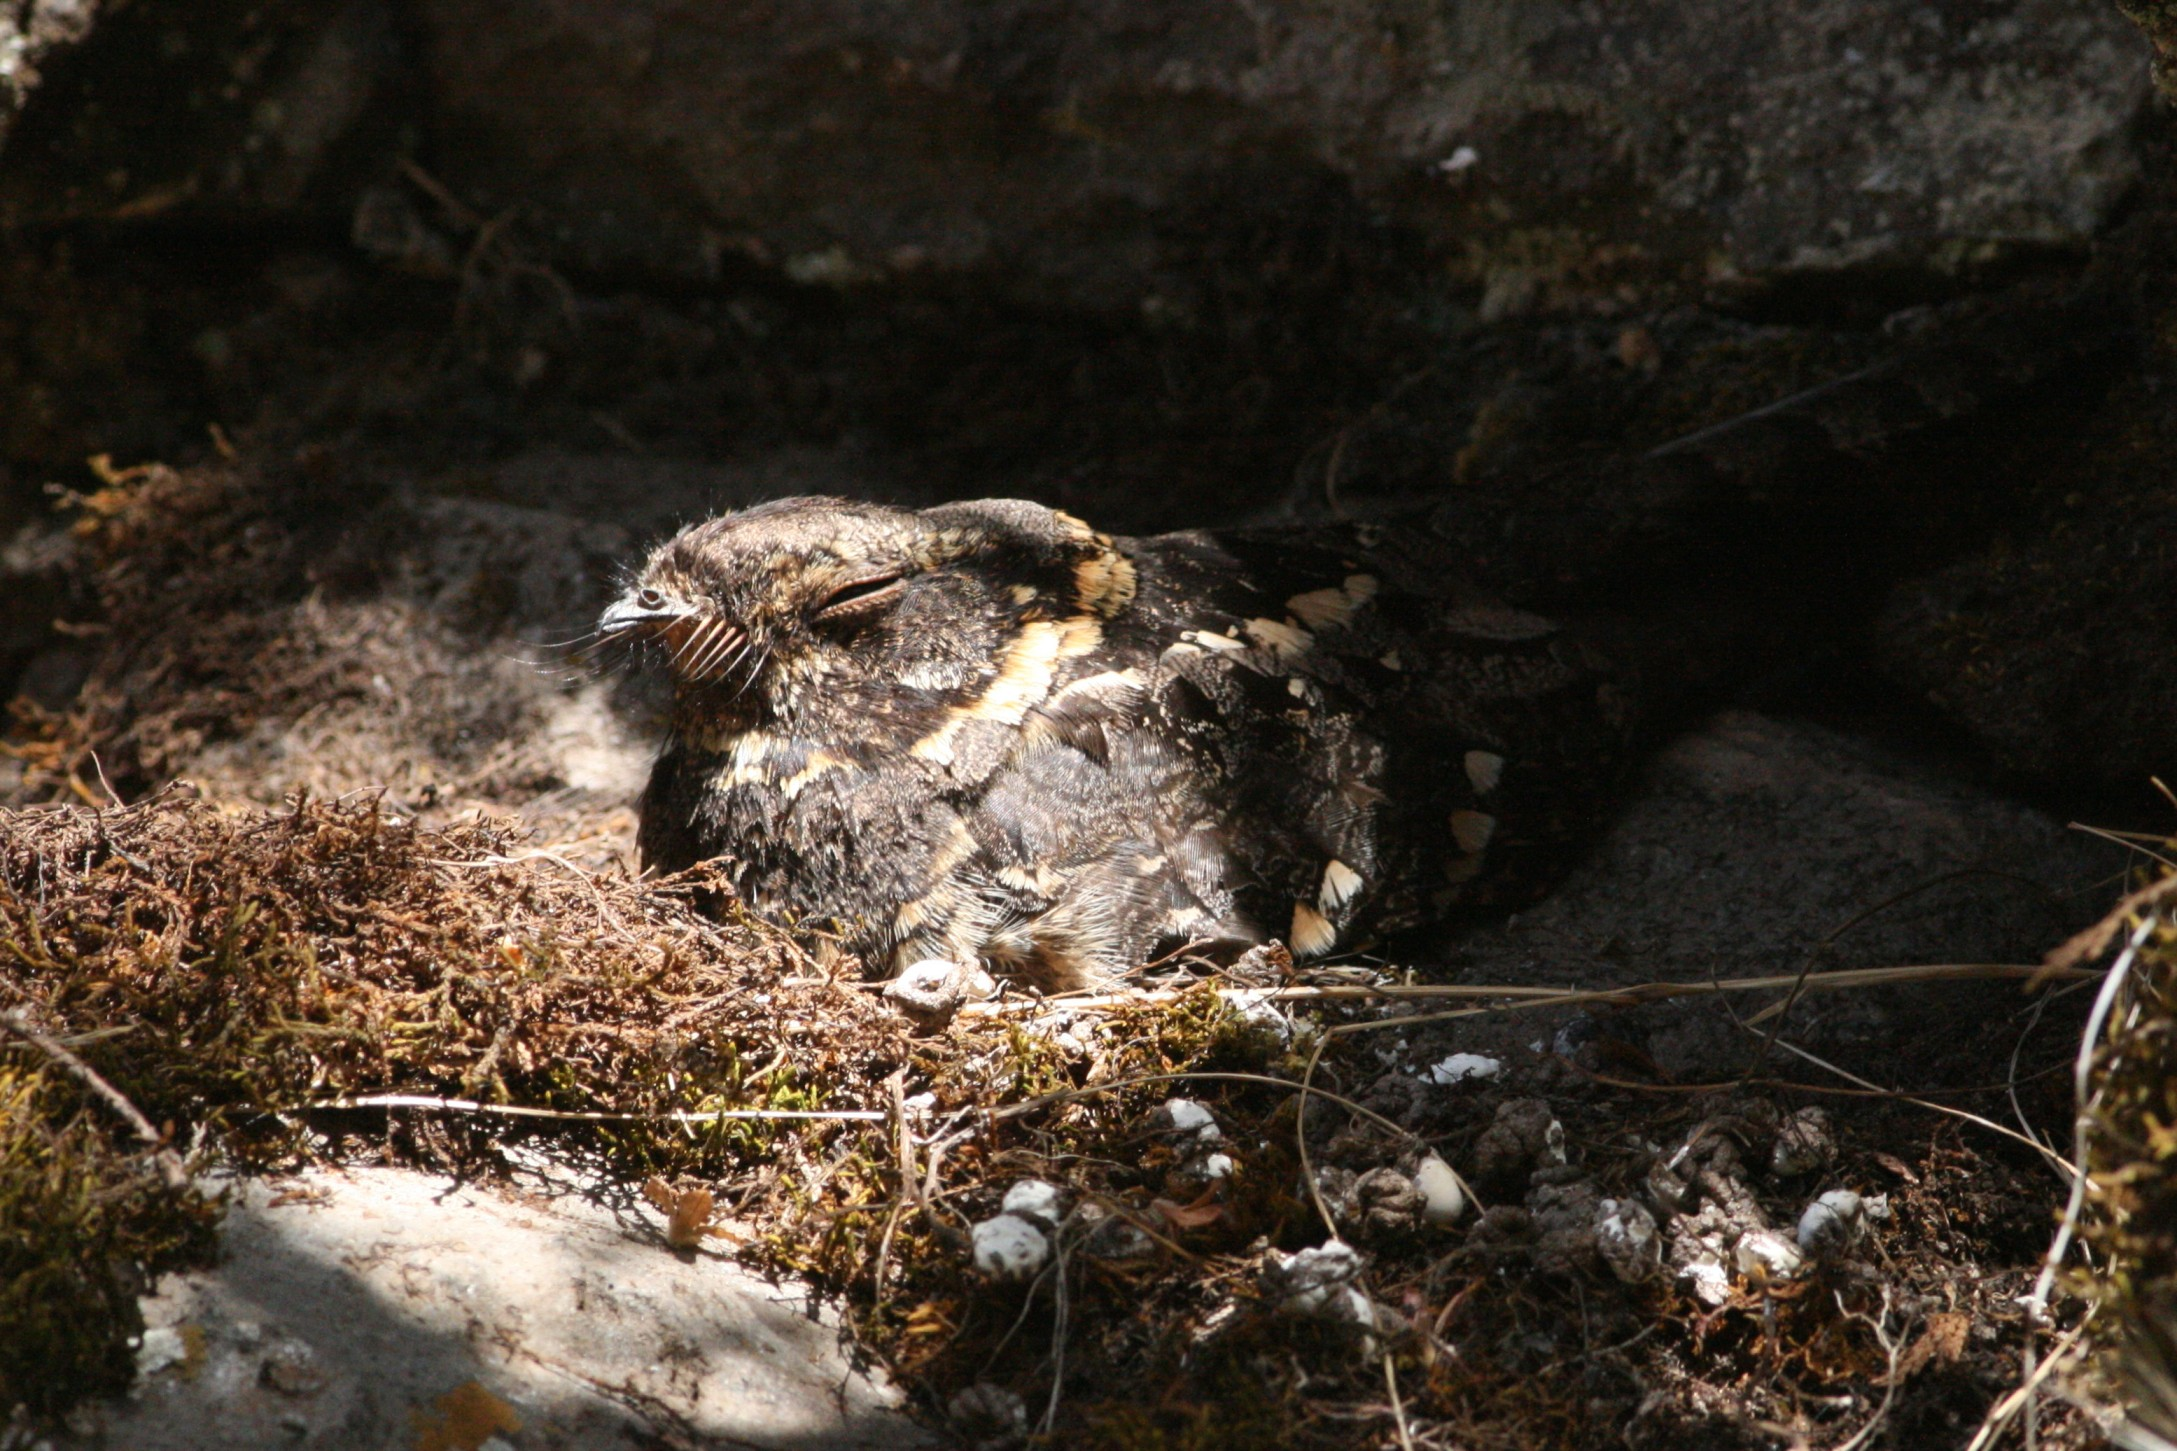 Abyssinian Nightjar in the cave